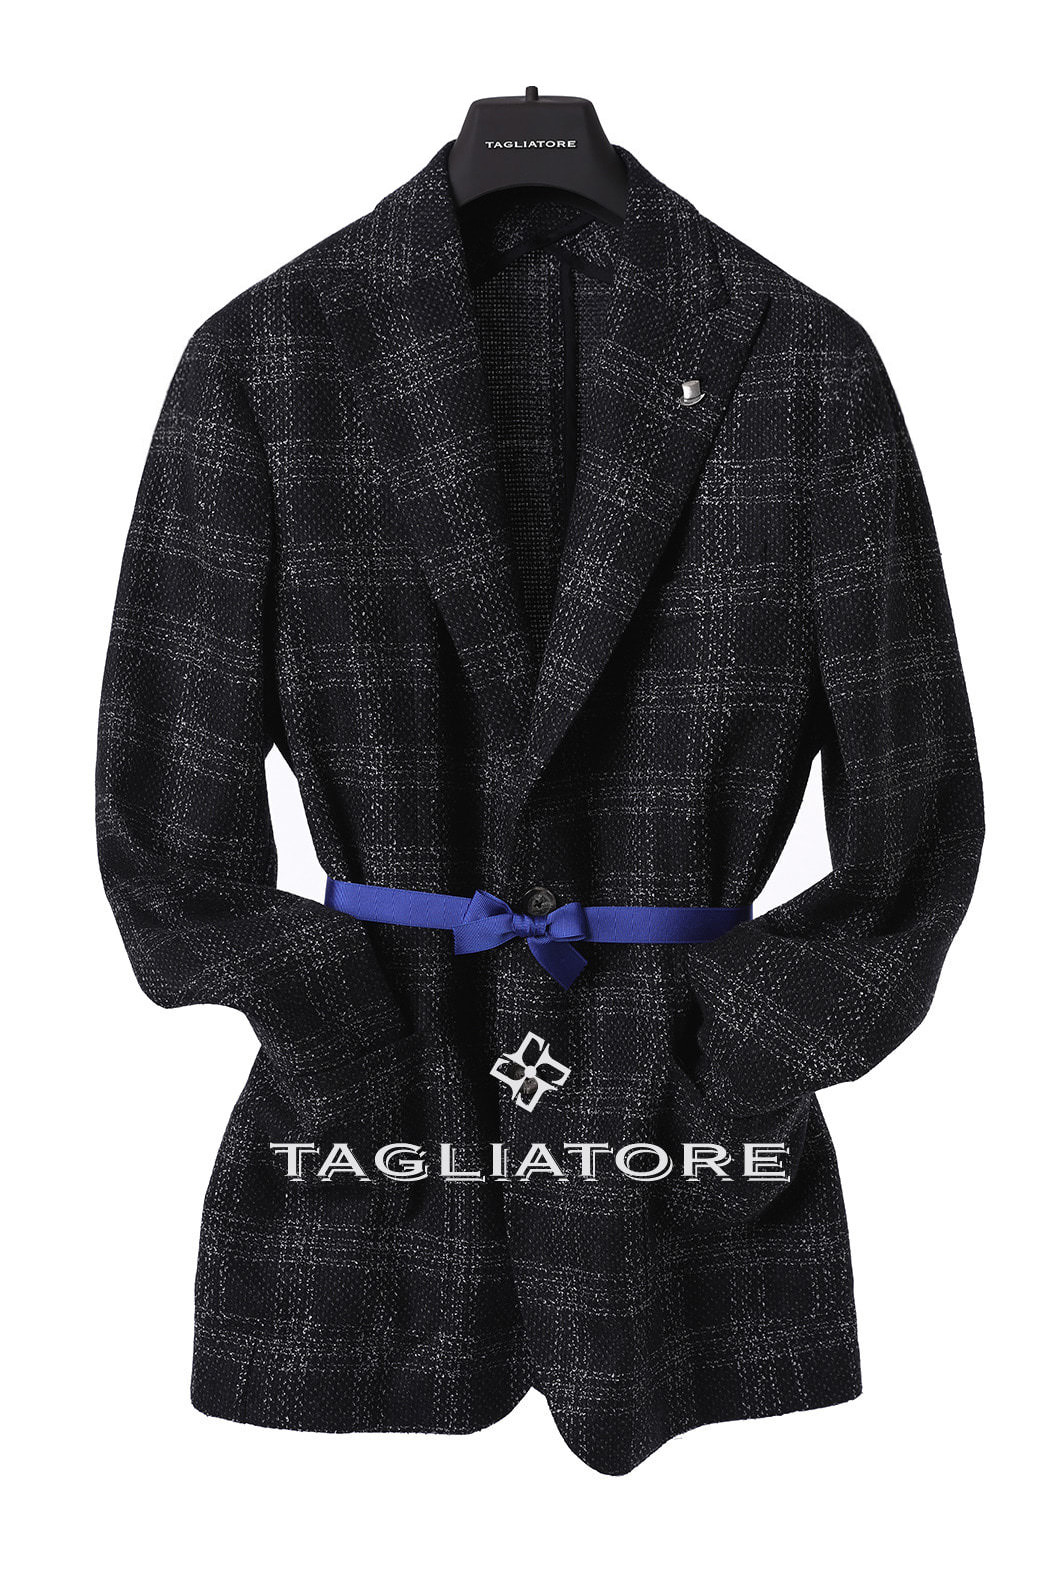 TAGLIATORE BOUCLE TARTAN CHECK JACKET-BLACK